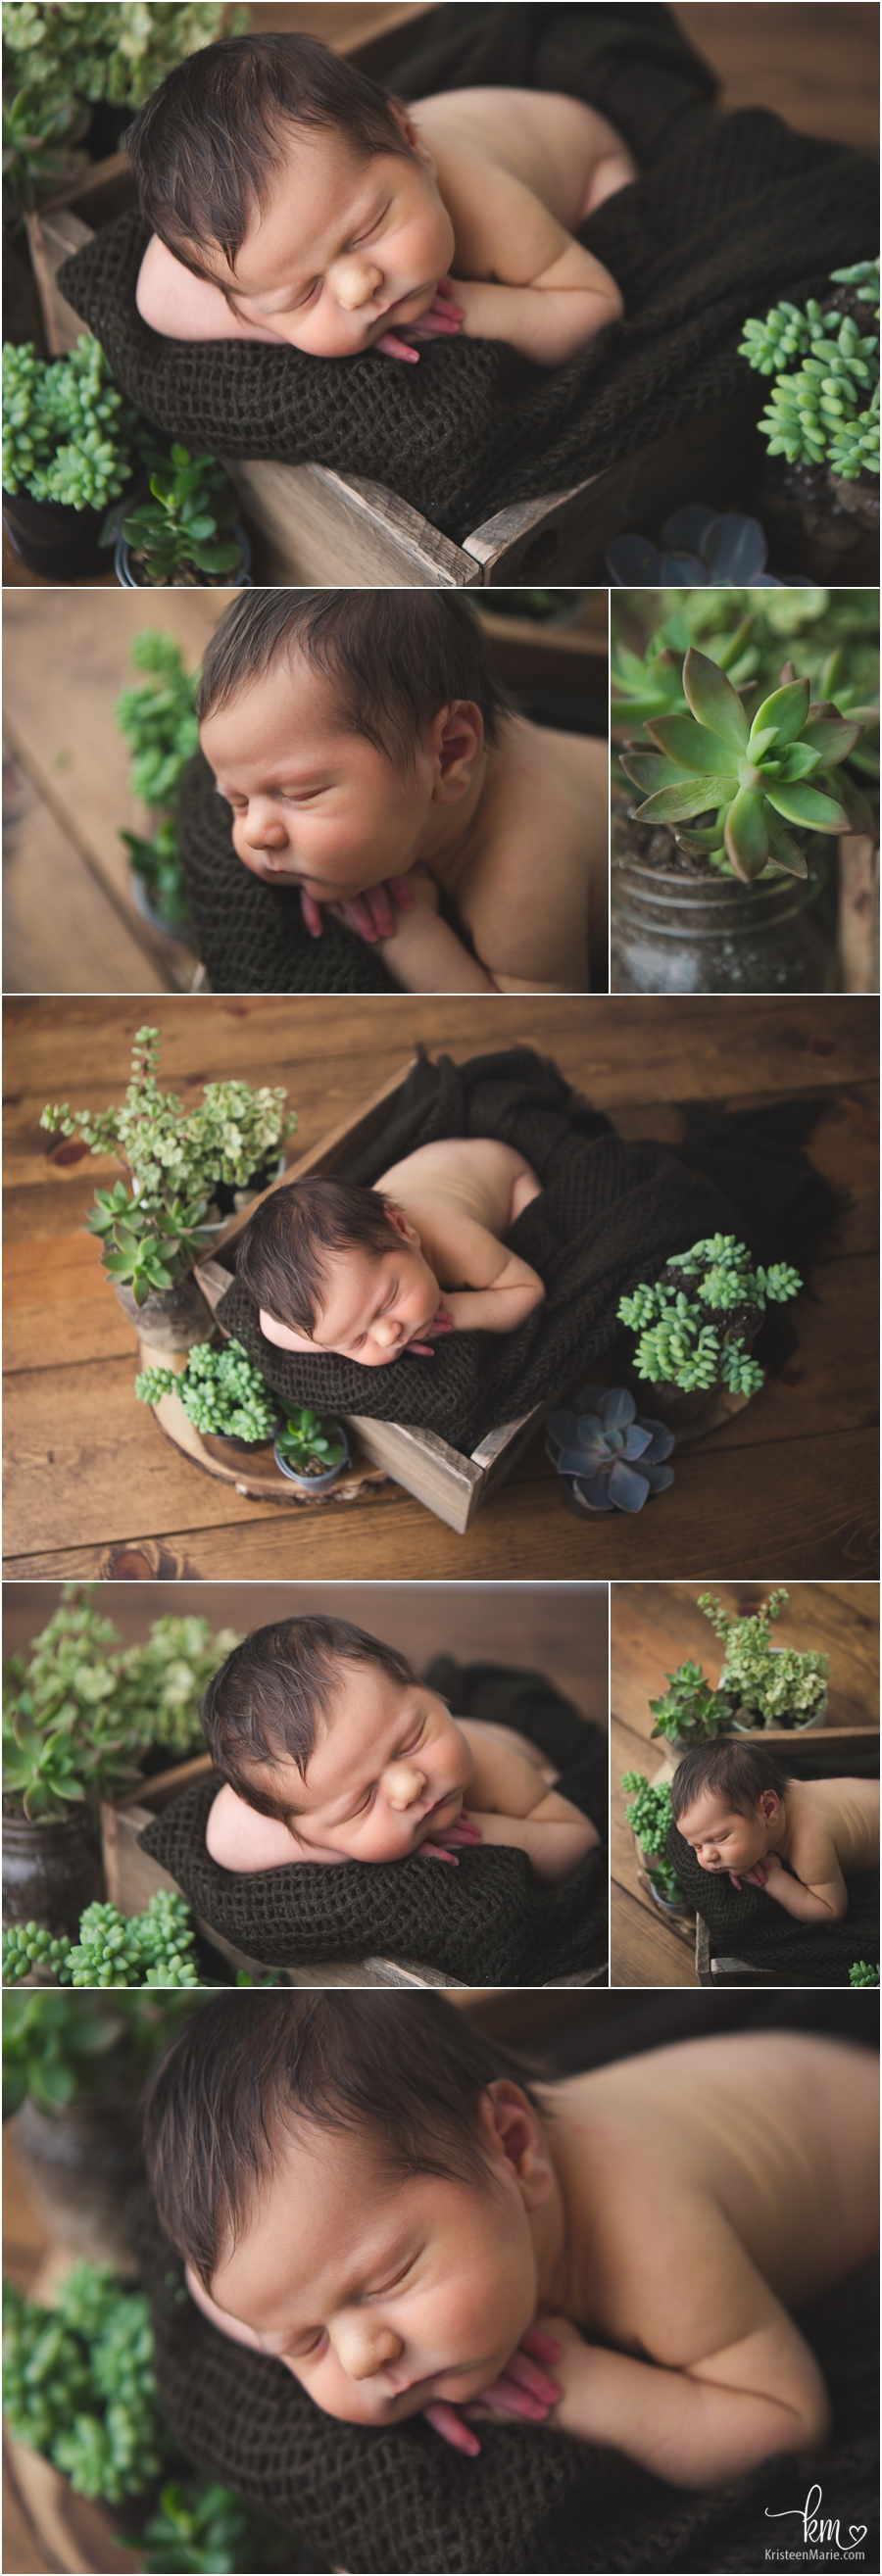 succulents and a newborn baby - plants and baby picture - adorable!!